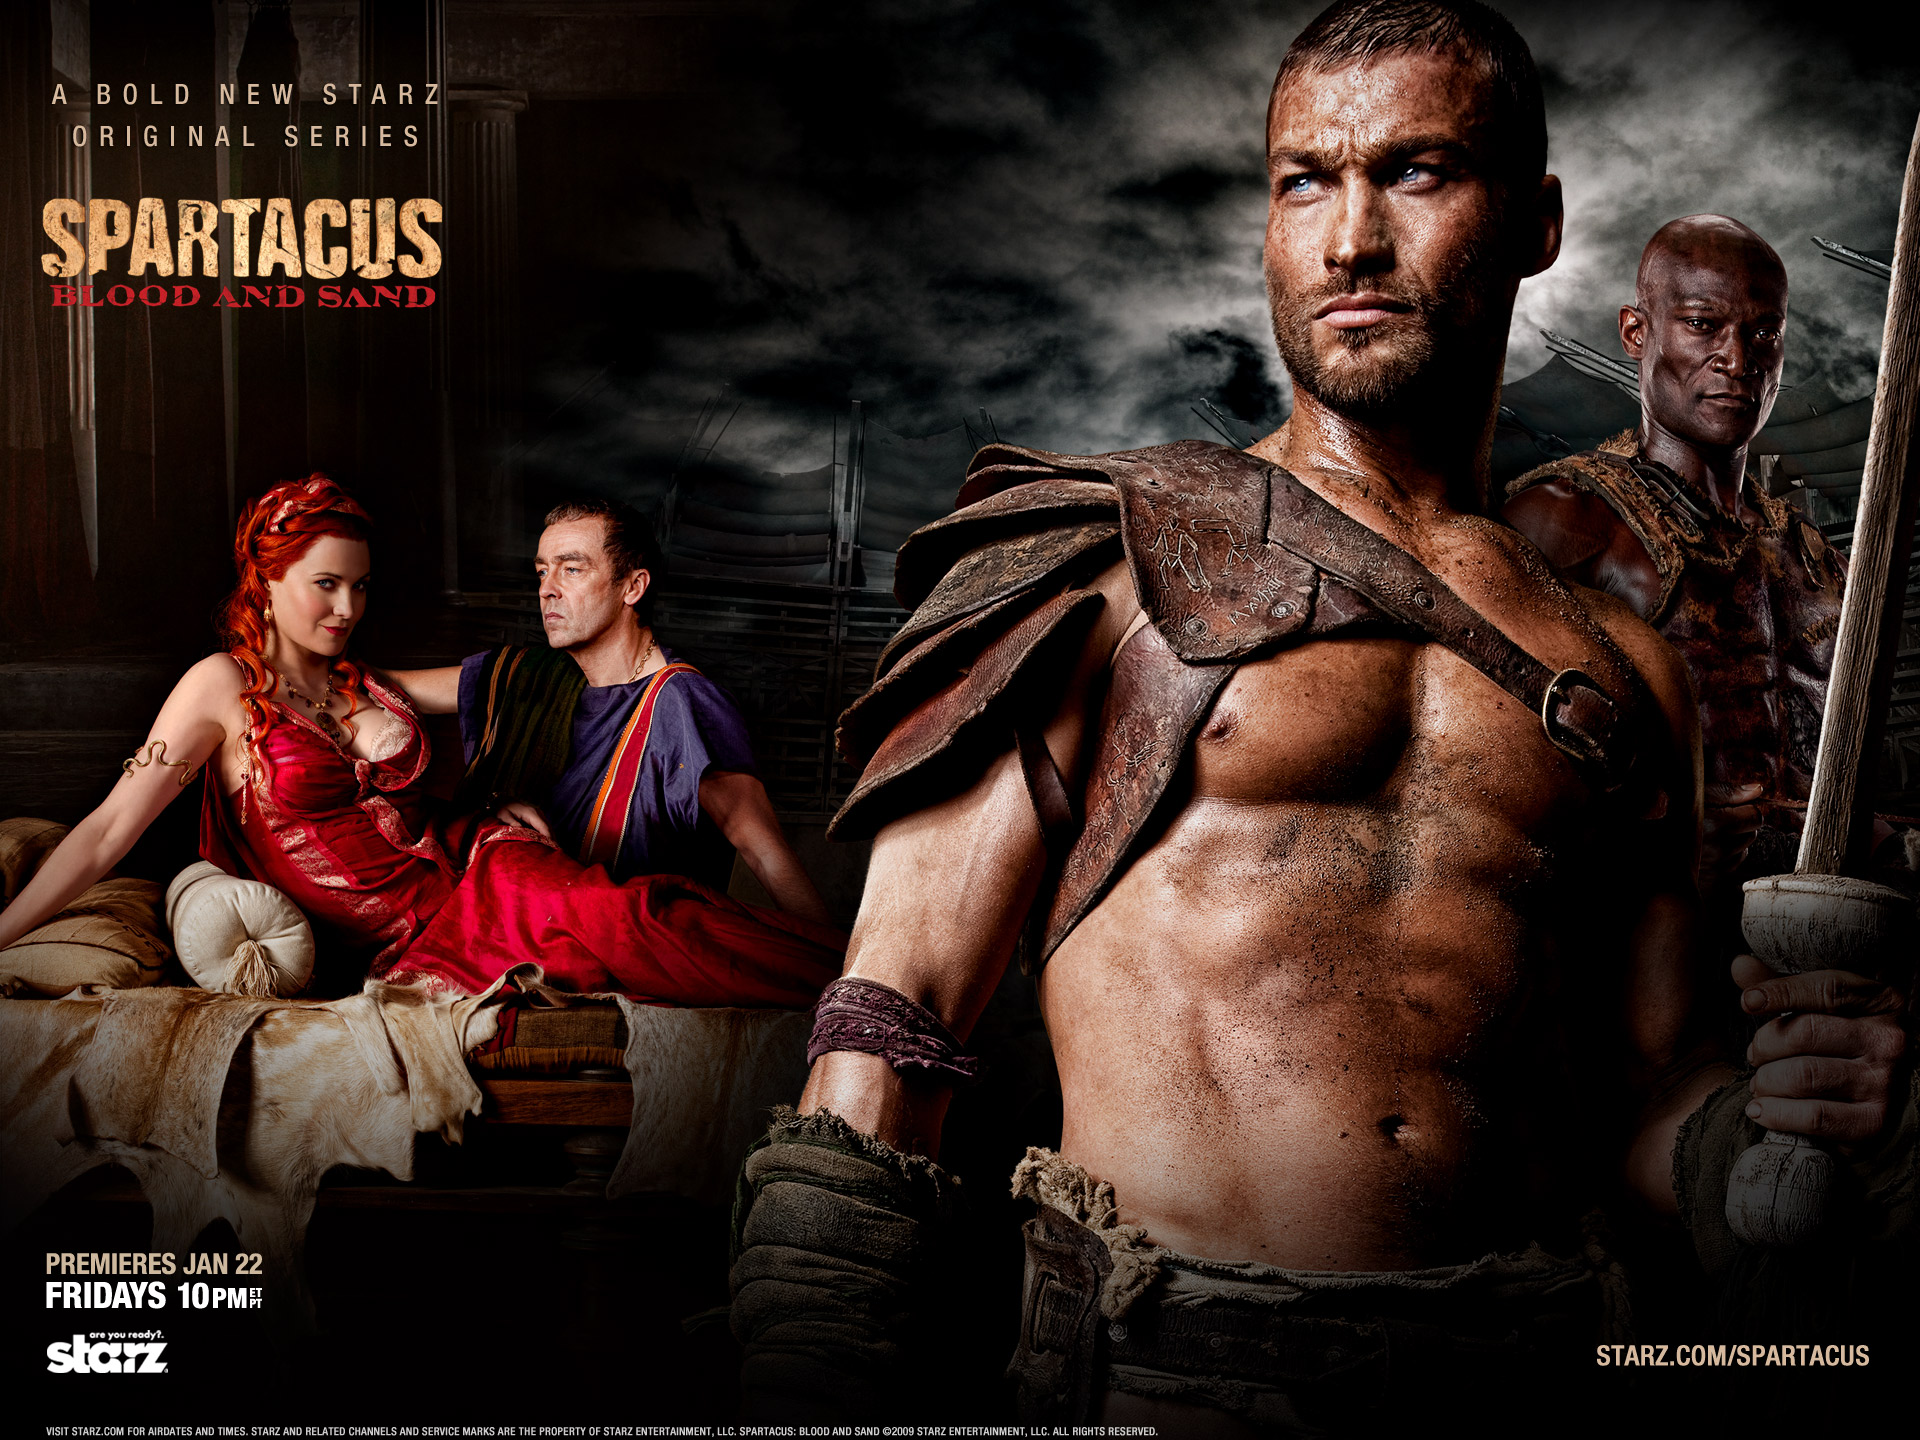 Spartacus vengeance s02e10 wrath of the gods video dailymotion.